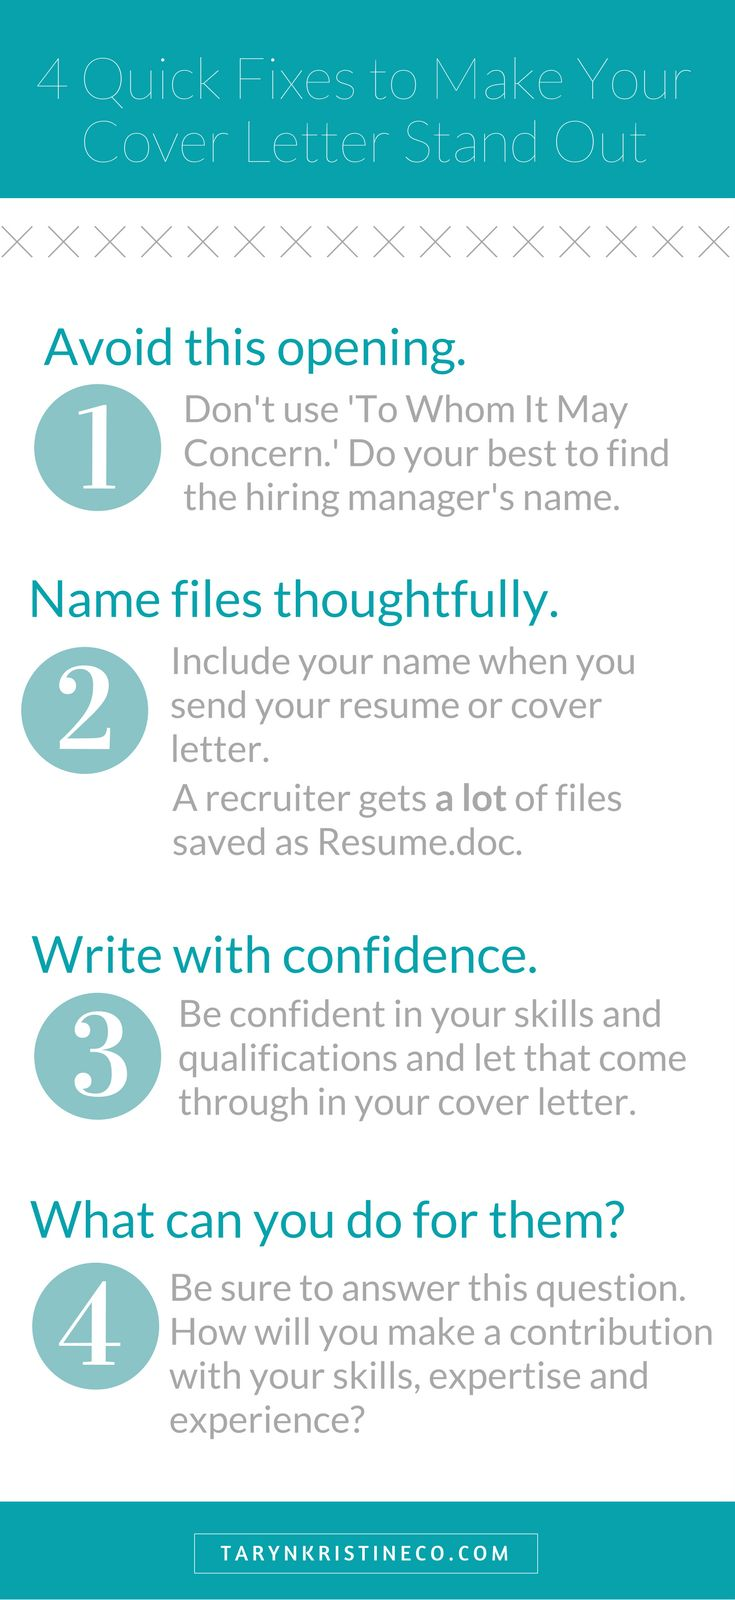 these tips will show you how to make your cover letter stand out